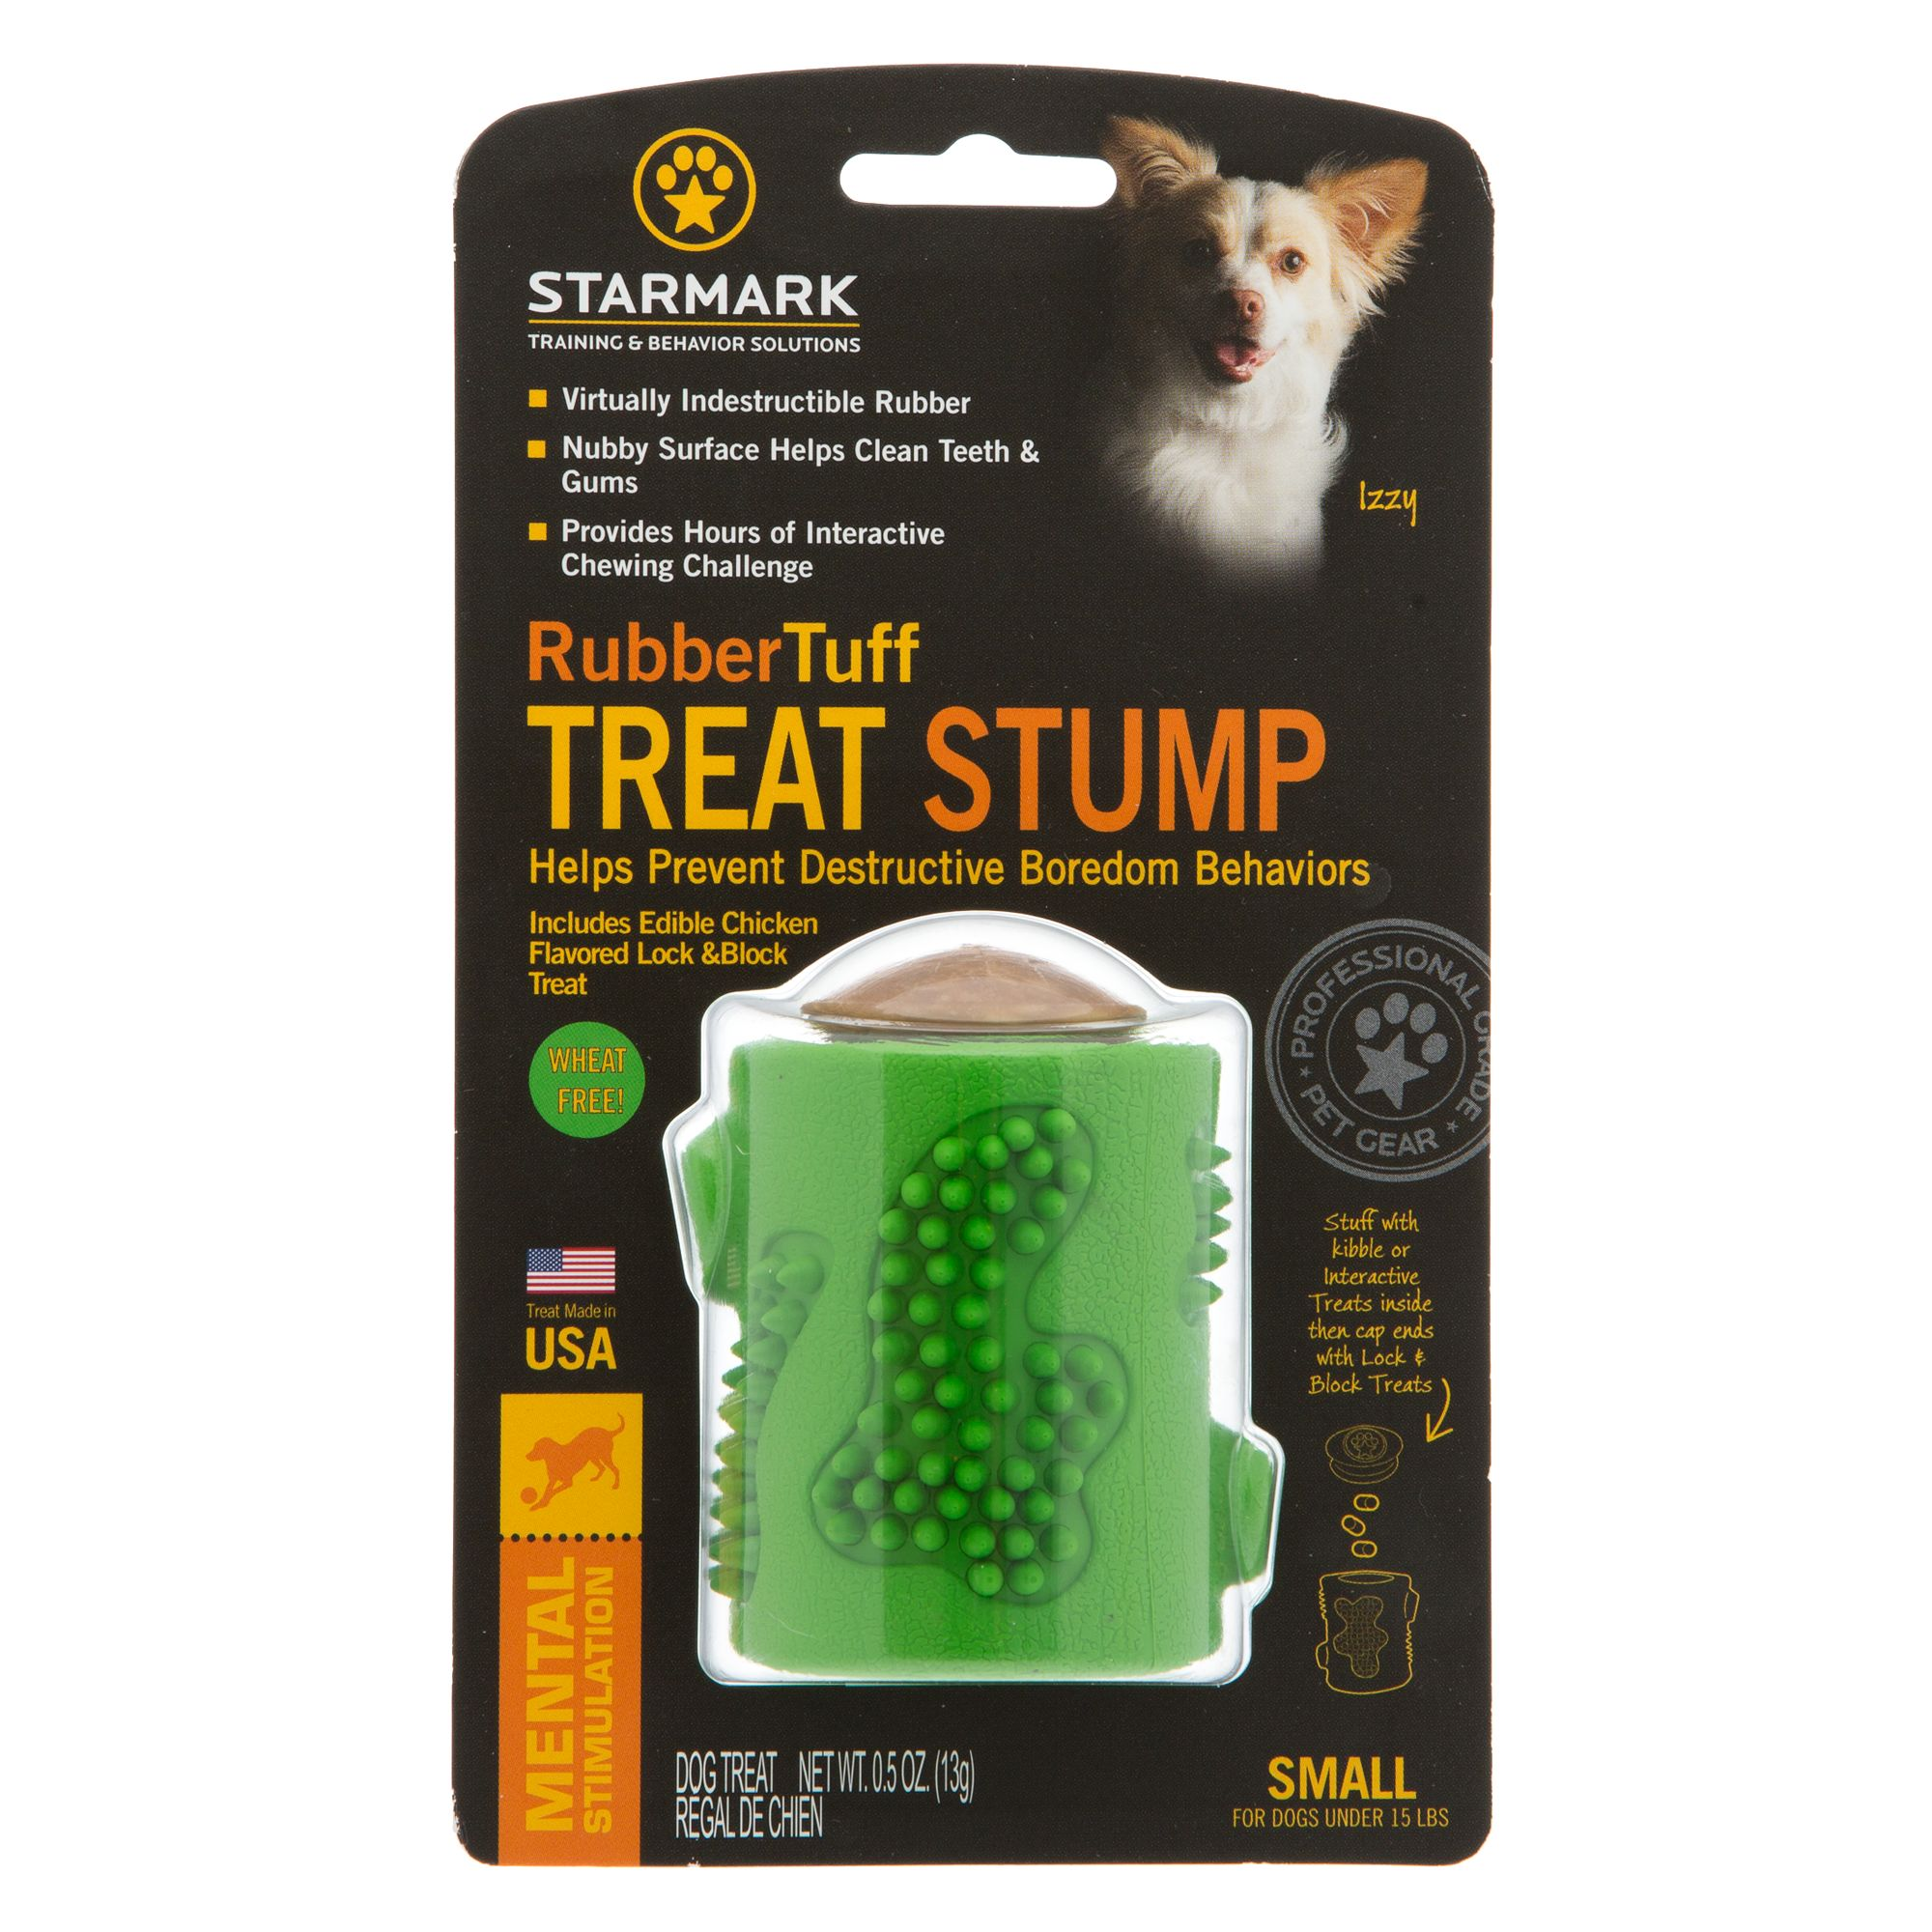 Starmark Rubber Tuff Stump Treat Dog Toy size: Small, Chicken, Crunchy, Small Dogs Under 15 lbs, Rice Flour 5249085